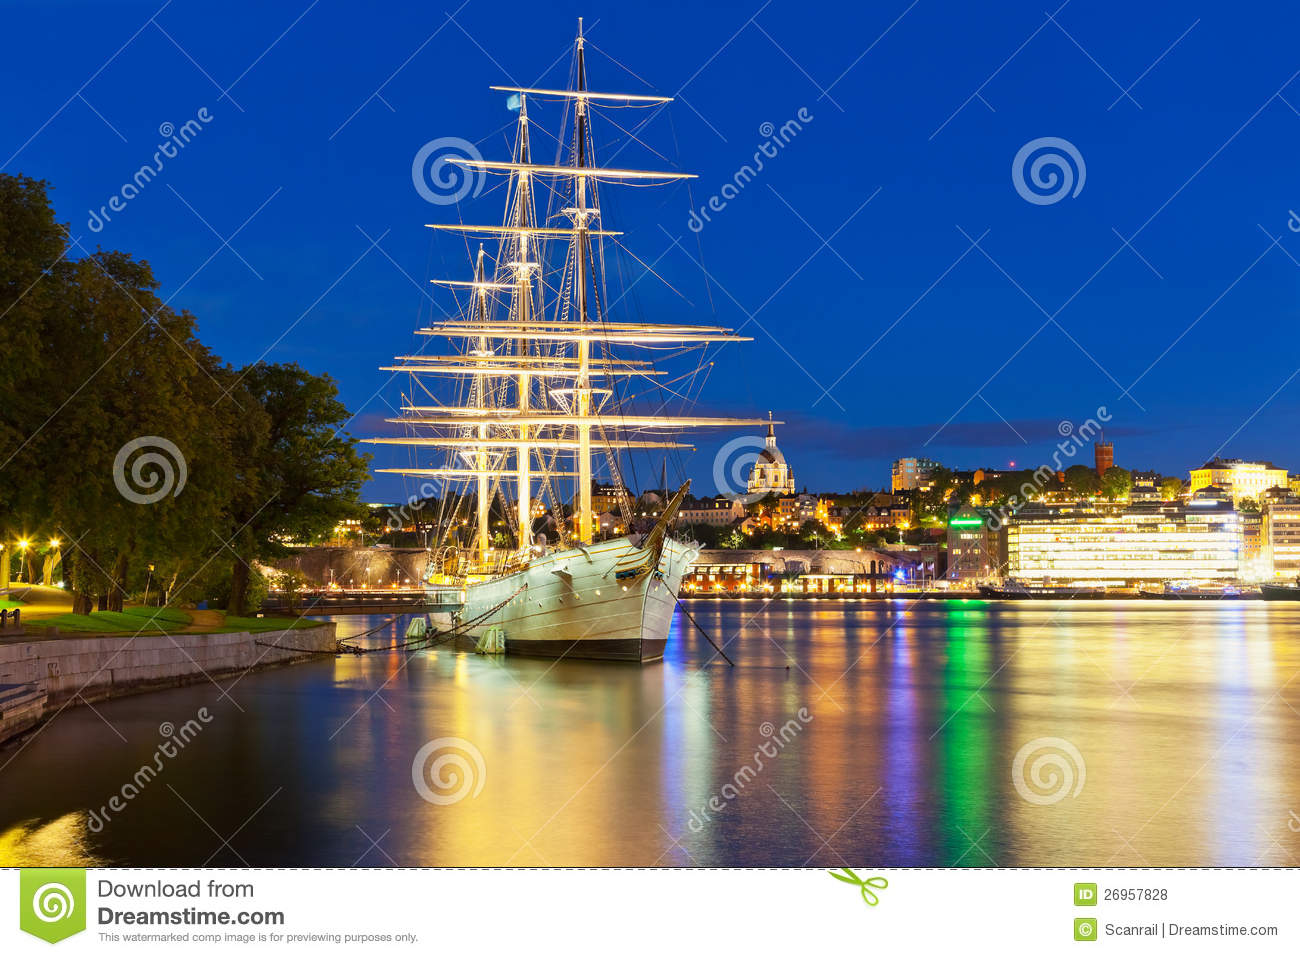 Night Scenery Of Stockholm, Sweden Royalty Free Stock Photos - Image: 26957828